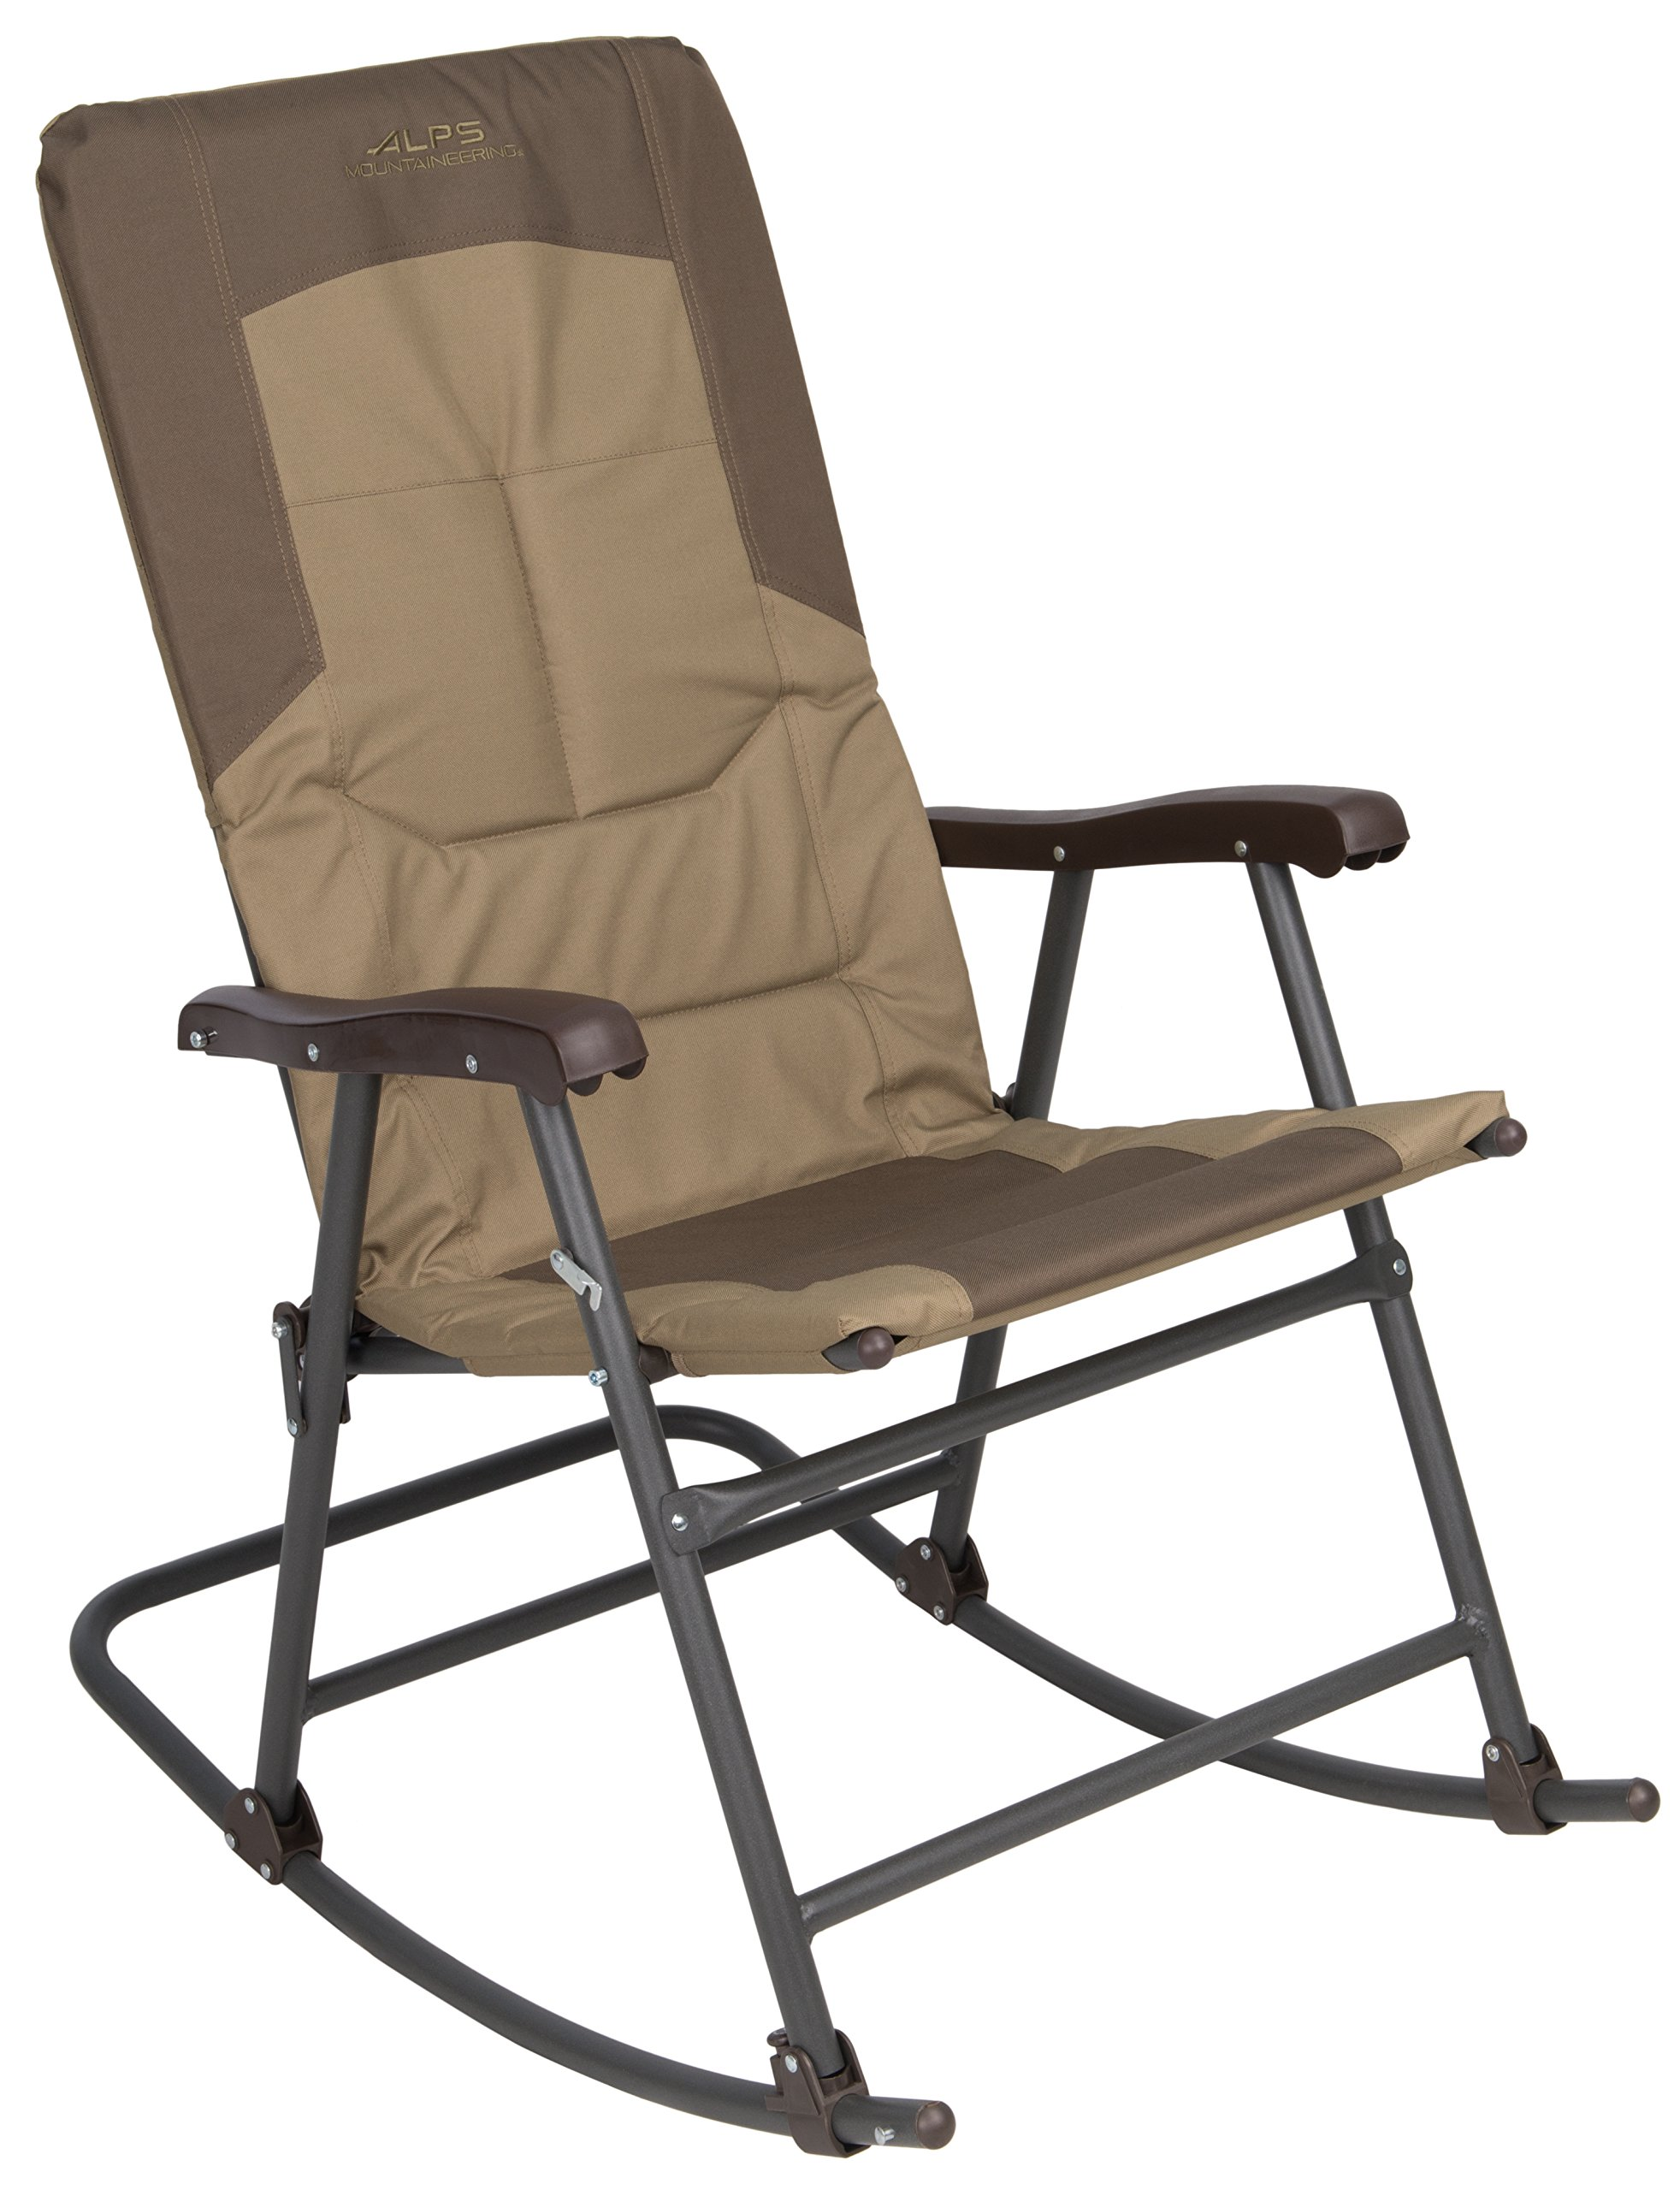 ALPS Mountaineering Rocking Chair by ALPS Mountaineering (Image #1)